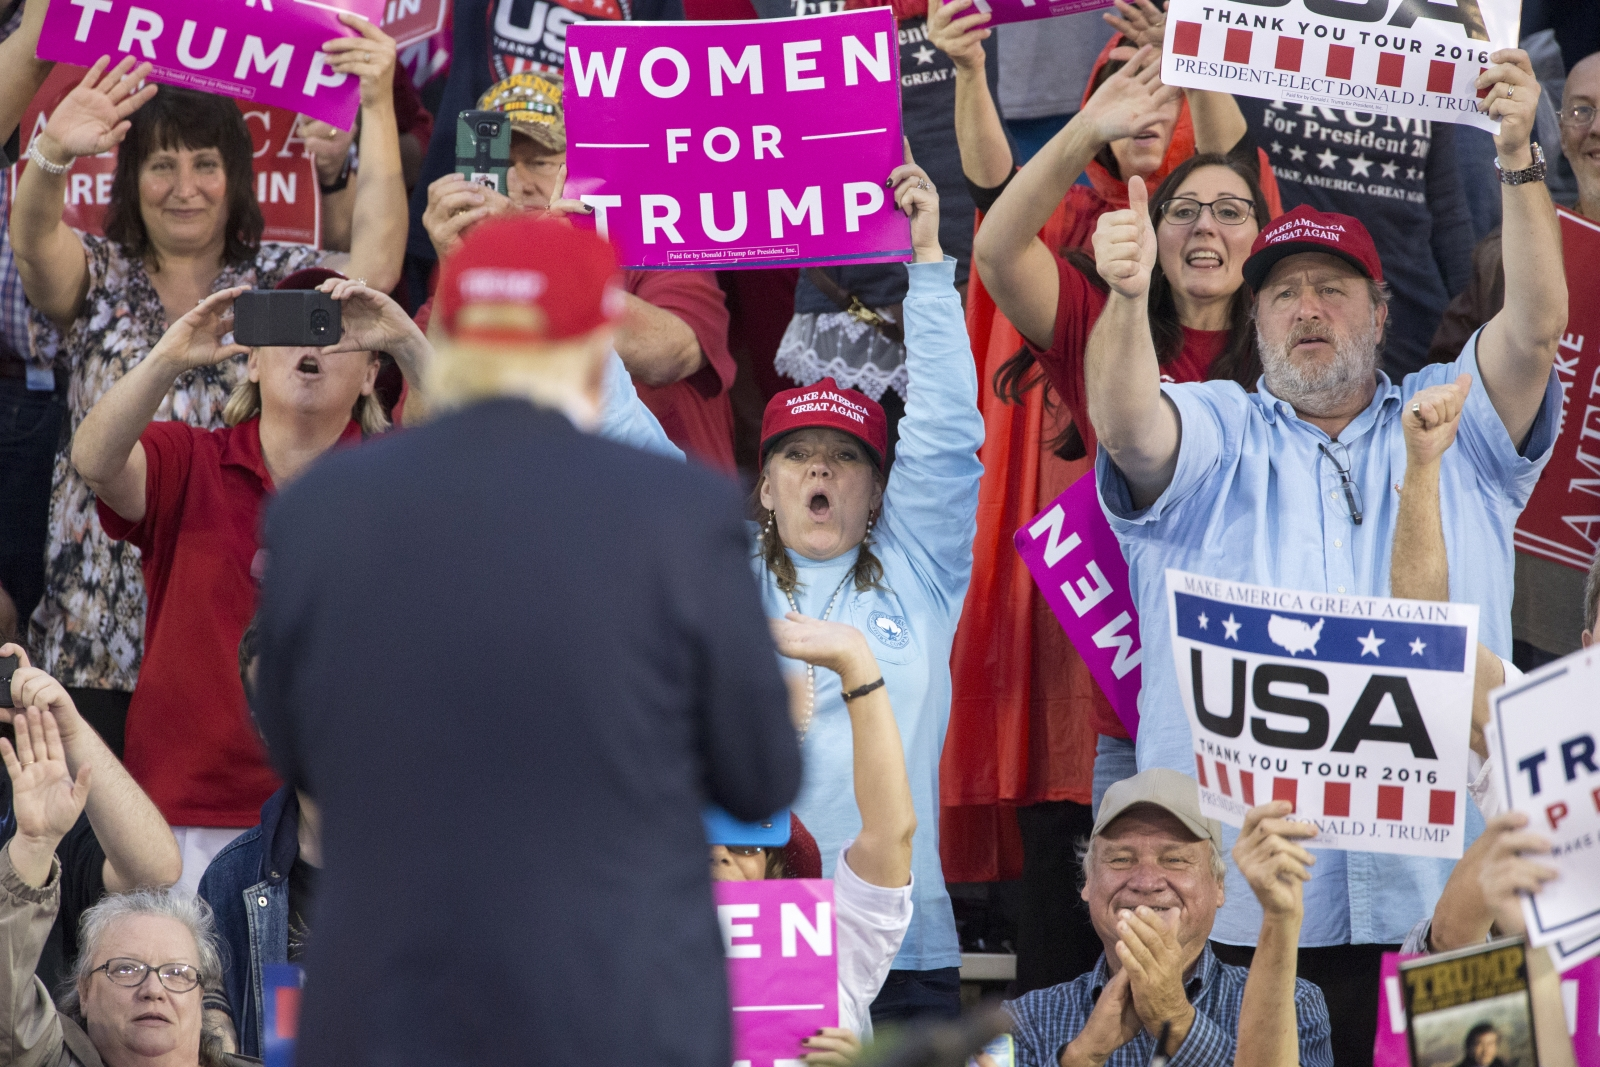 Supporters cheer Trump at Alabama rally